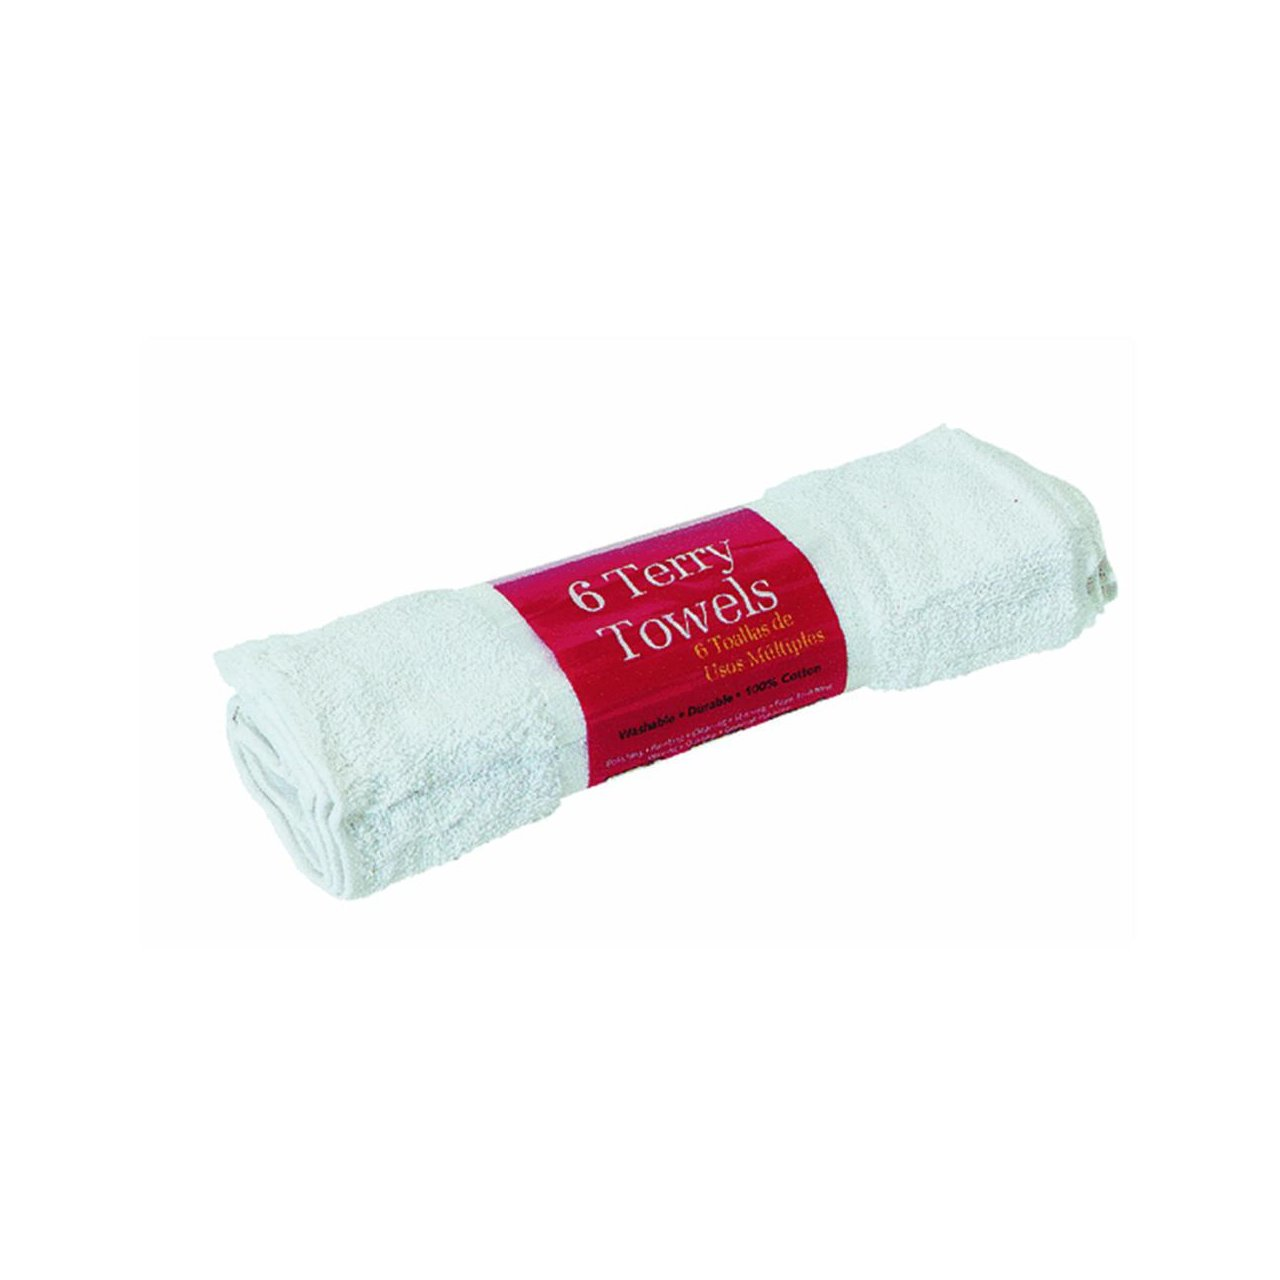 Amazon.com: Trimaco 10756/12 White SuperTuff Cotton Terry Towels 6 Count: Home & Kitchen